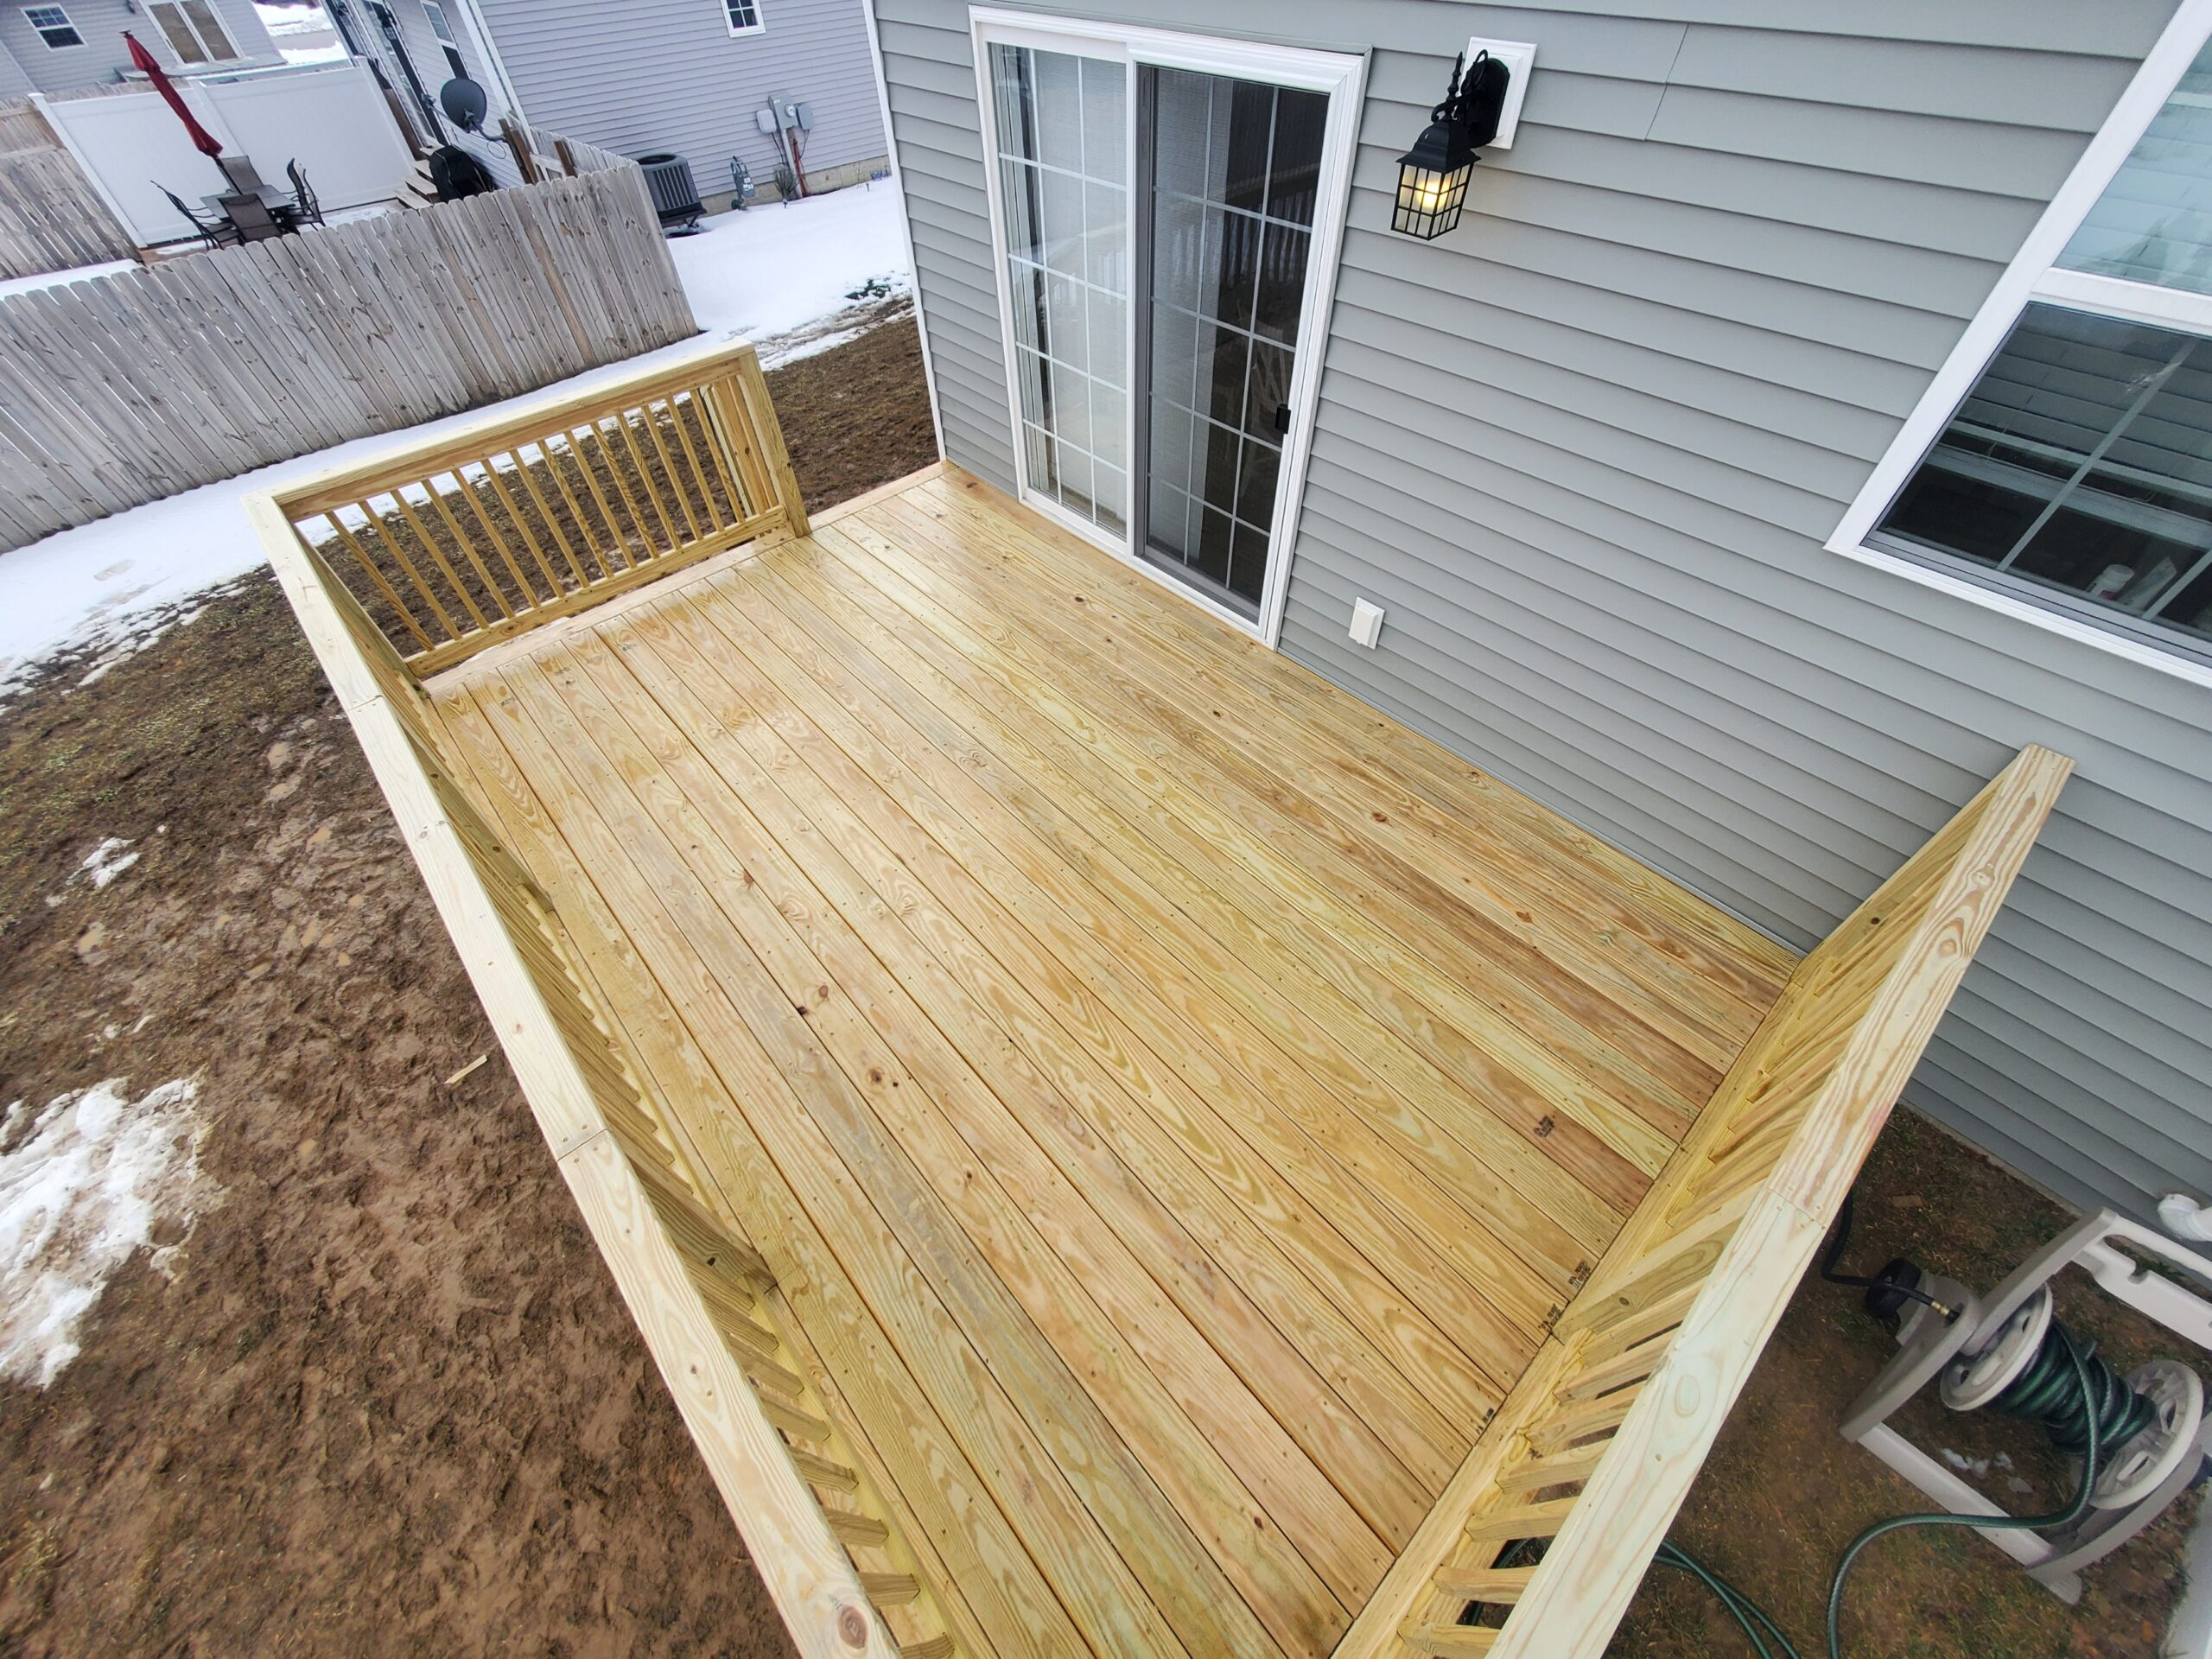 Pressure Treated Deck Builders - Hanover, PA - Hanover Deck Contractors - DREAMscape's